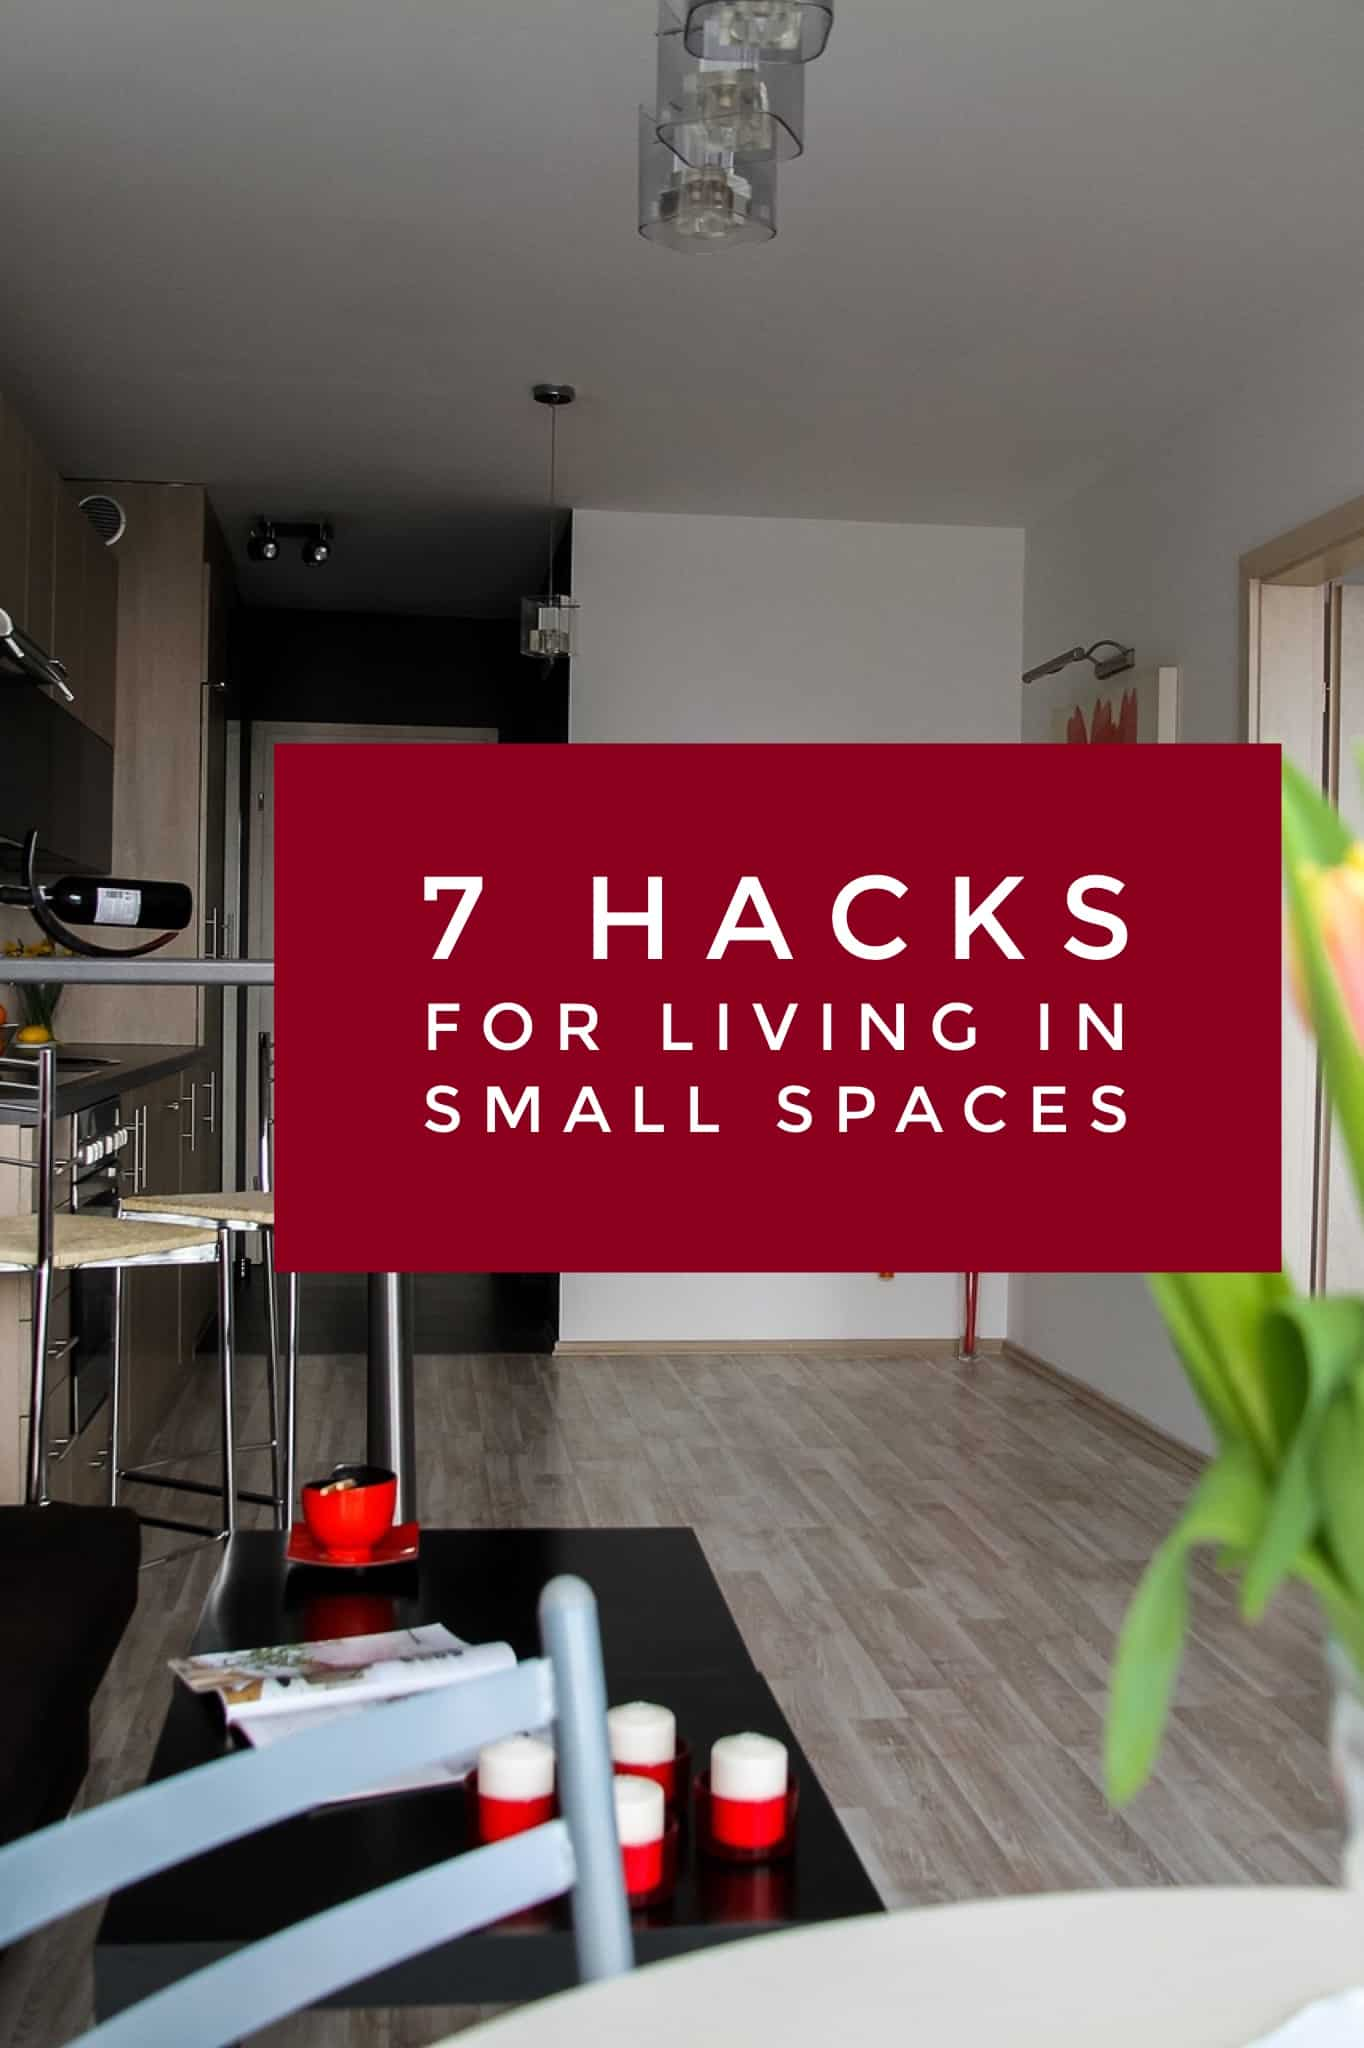 7 Hacks for Living in Small Spaces title